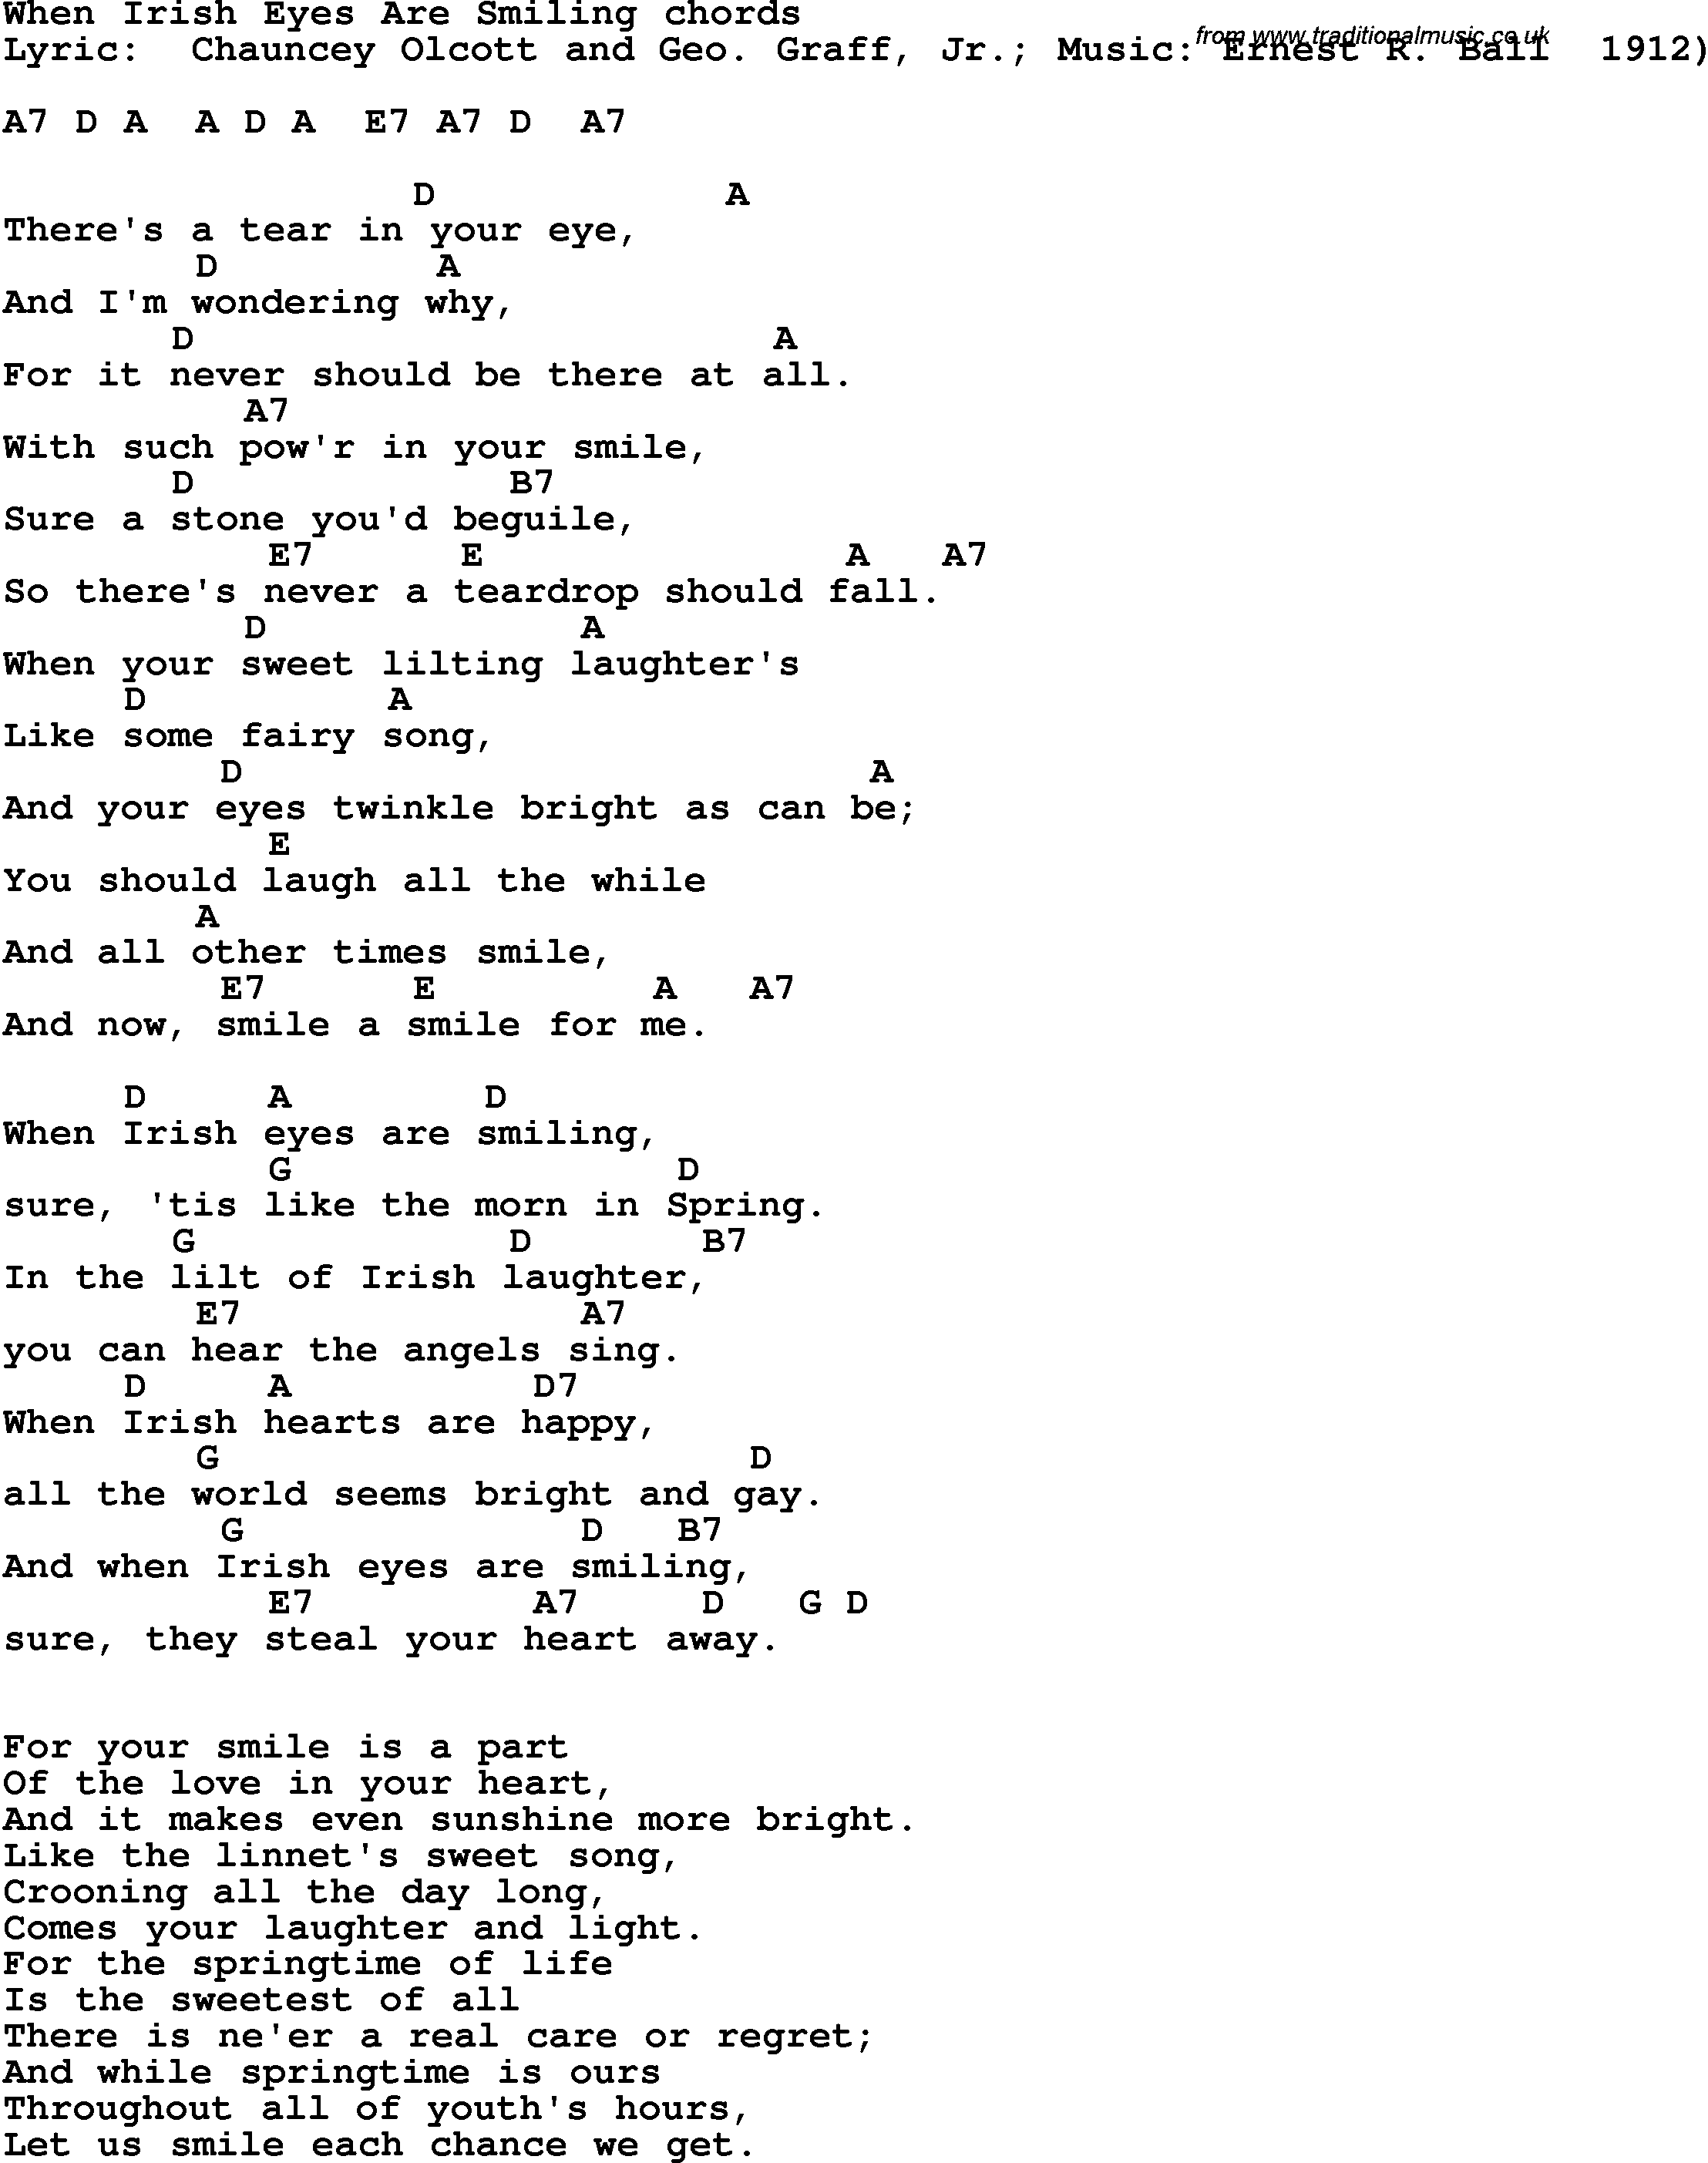 Song Lyrics With Guitar Chords For When Irish Eyes Are Smiling